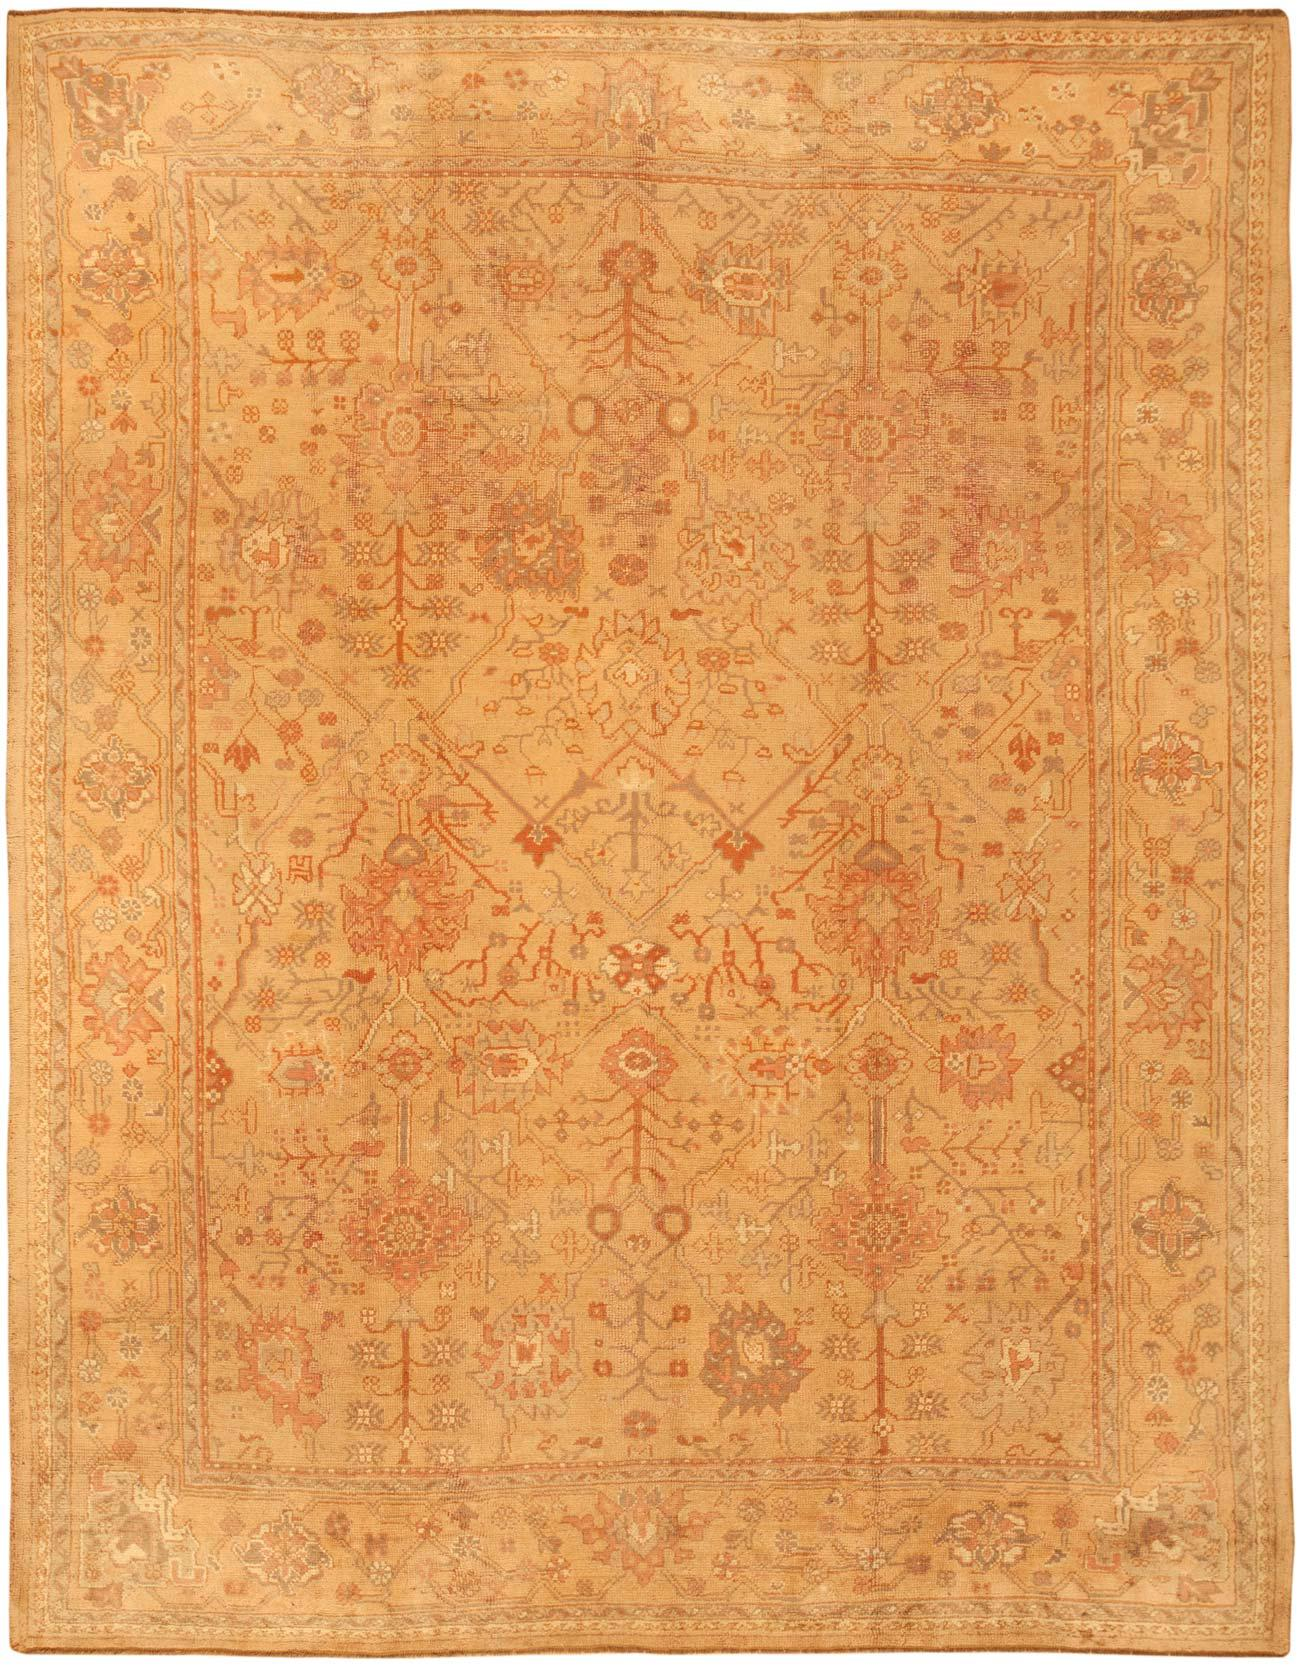 Mesmerizing oushak rugs for floorings and rugs ideas with antique oushak rugs